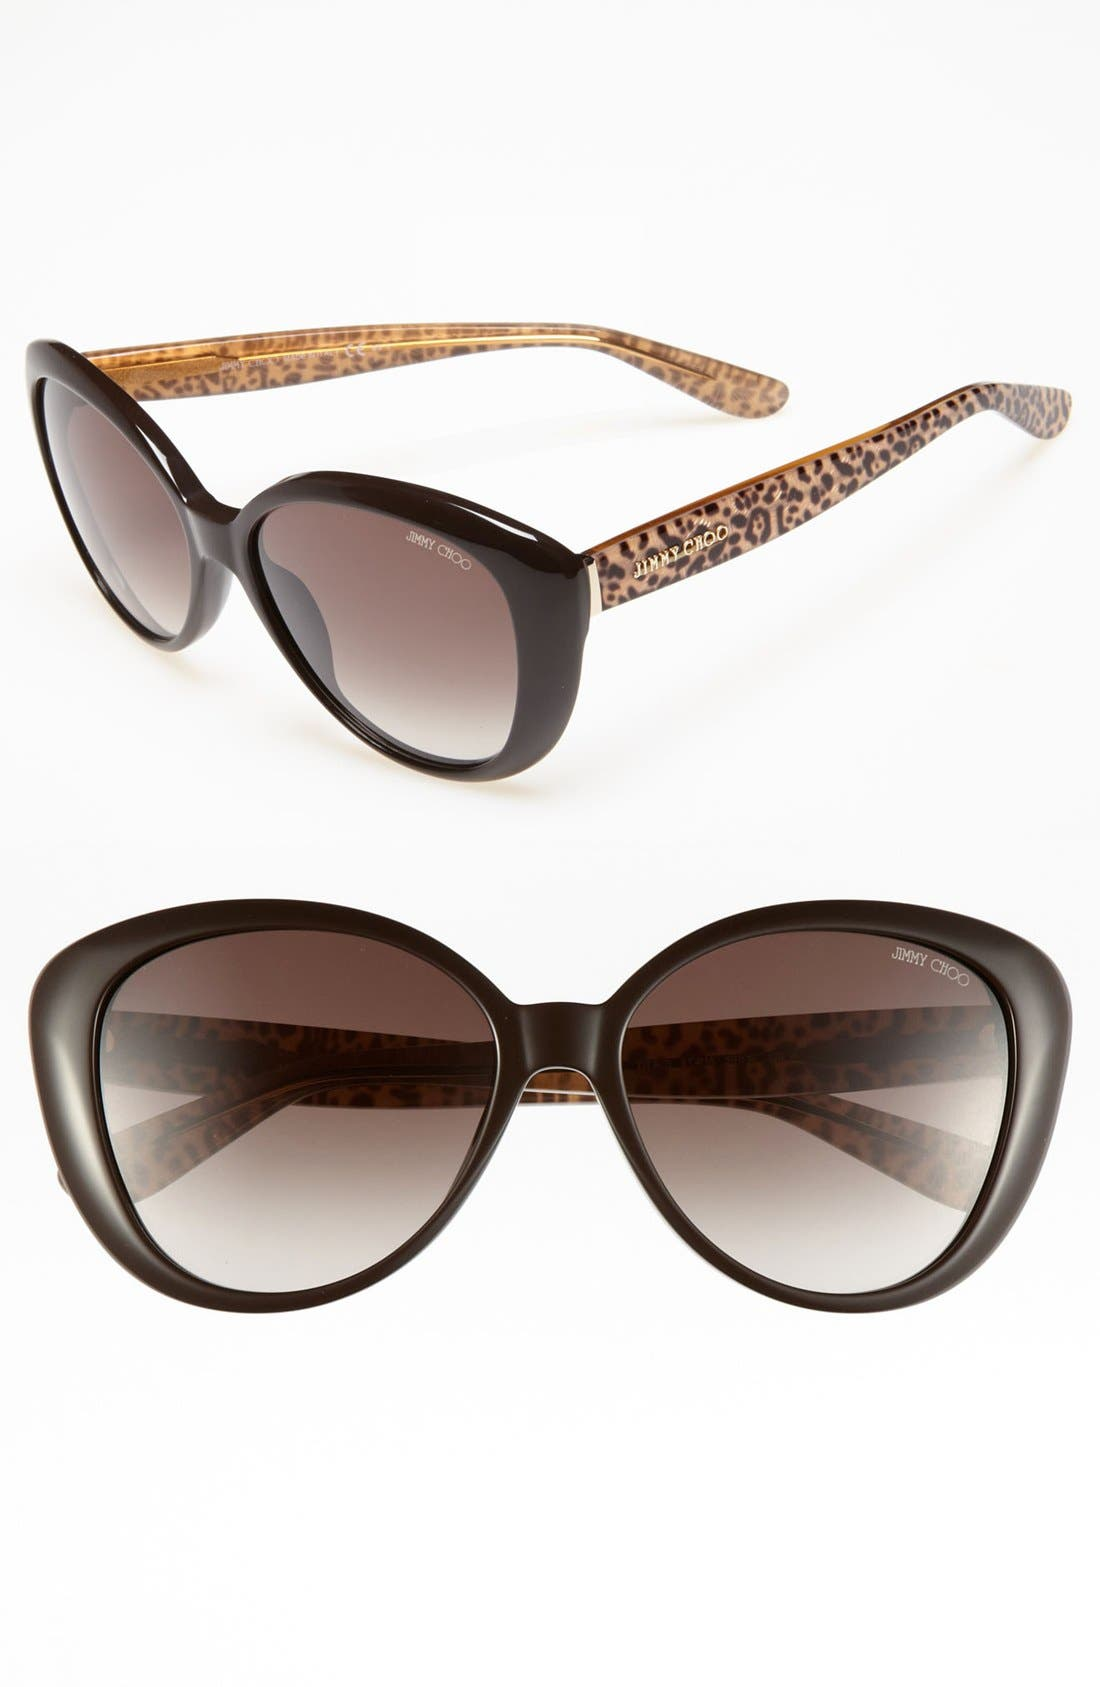 Main Image - Jimmy Choo 55mm Sunglasses